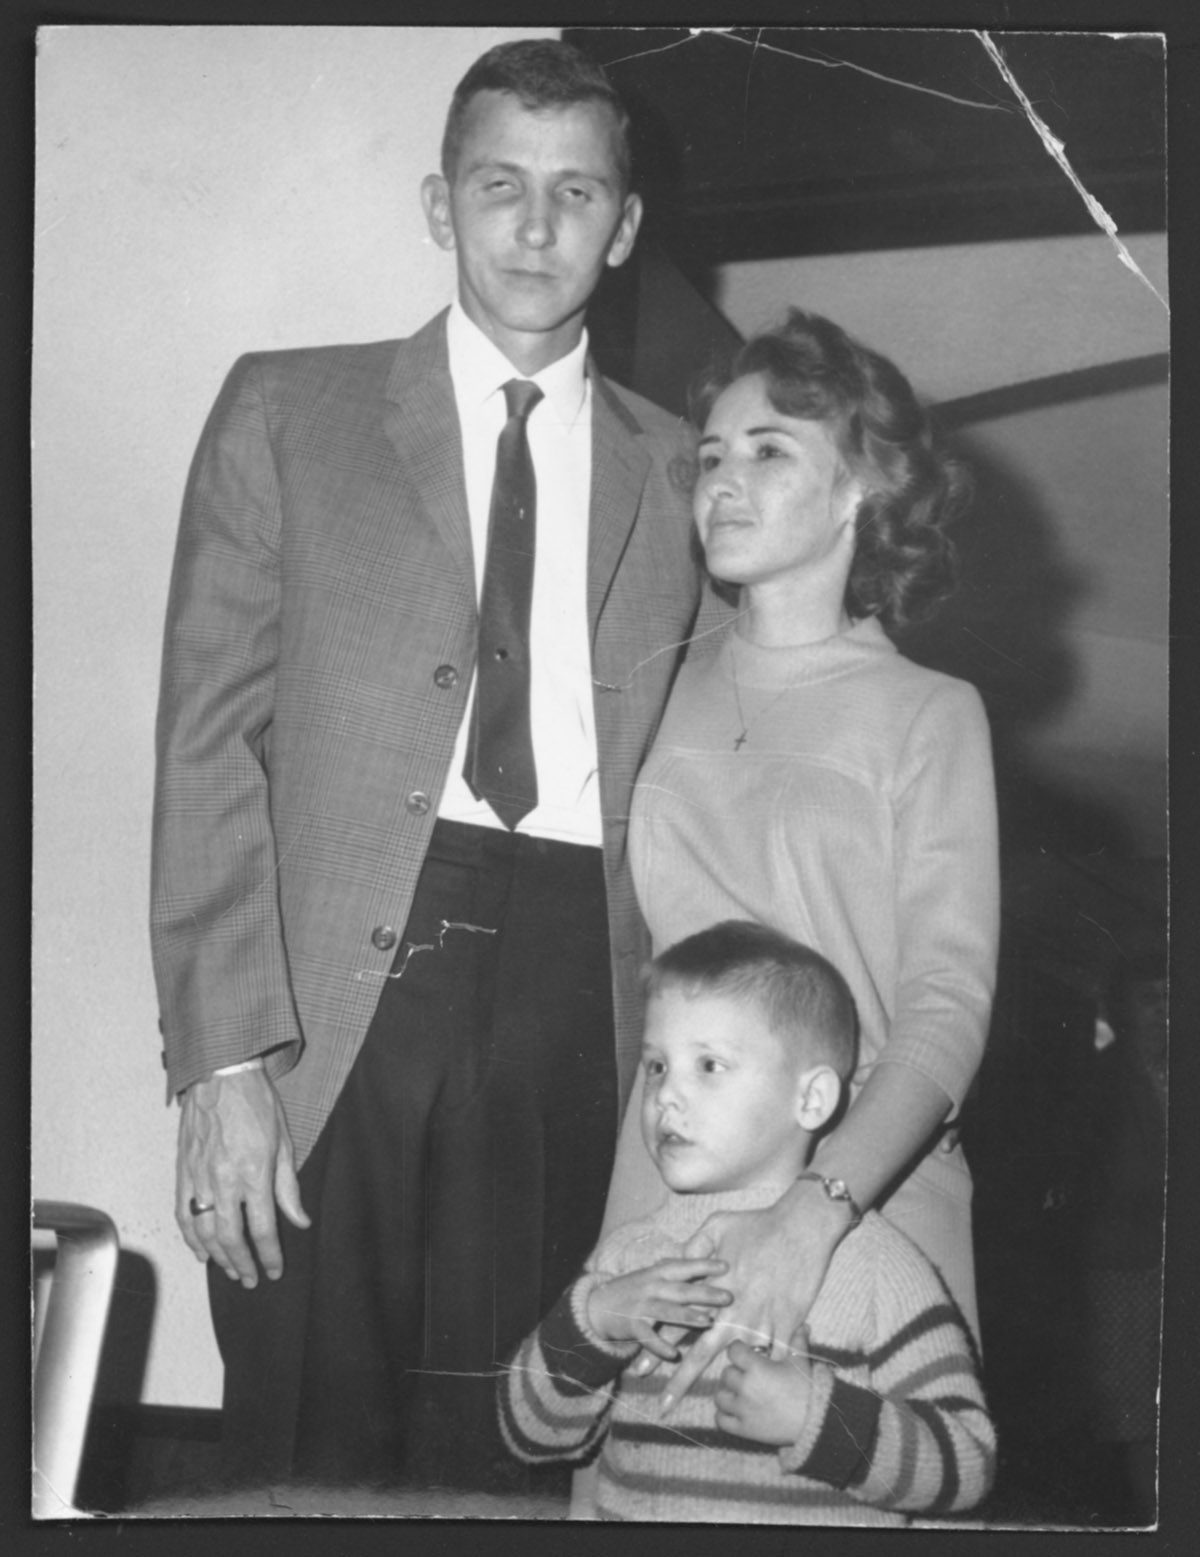 Charles R. Sterling with his wife and son, shortly after his release.